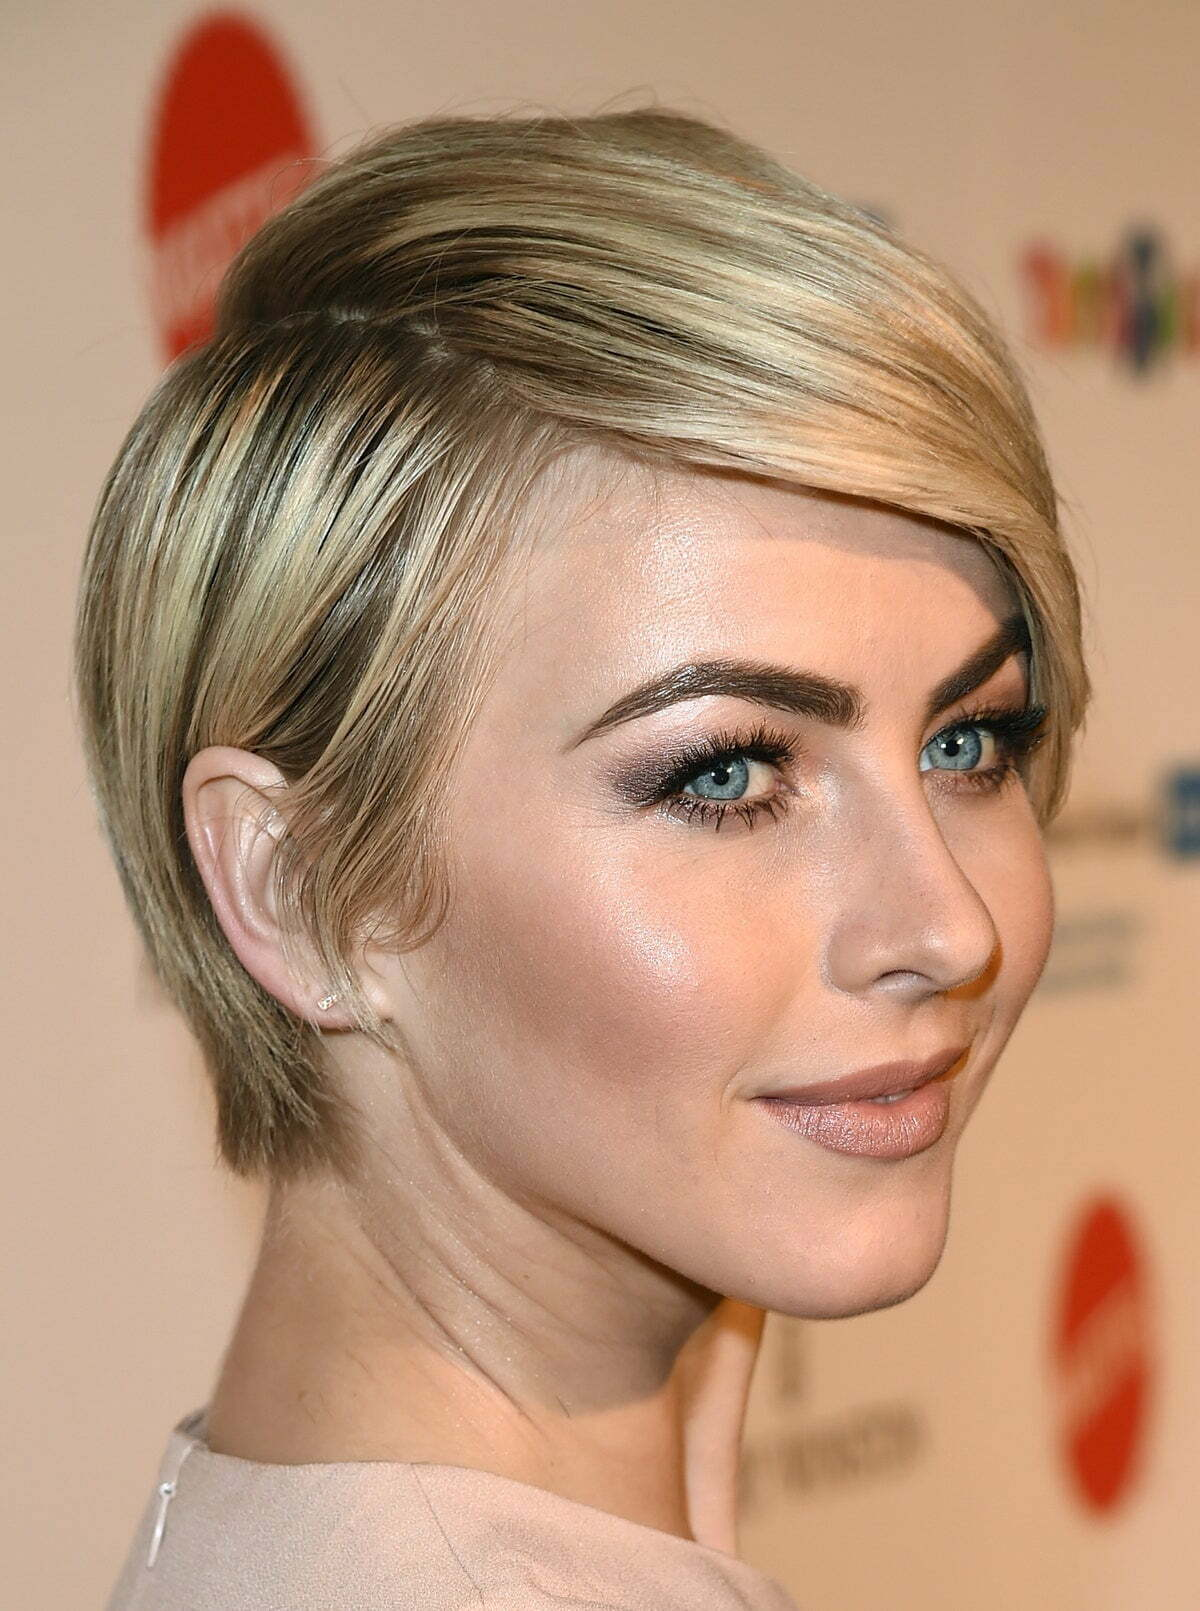 İmage May Contain Julianne Hough Face Human And Person